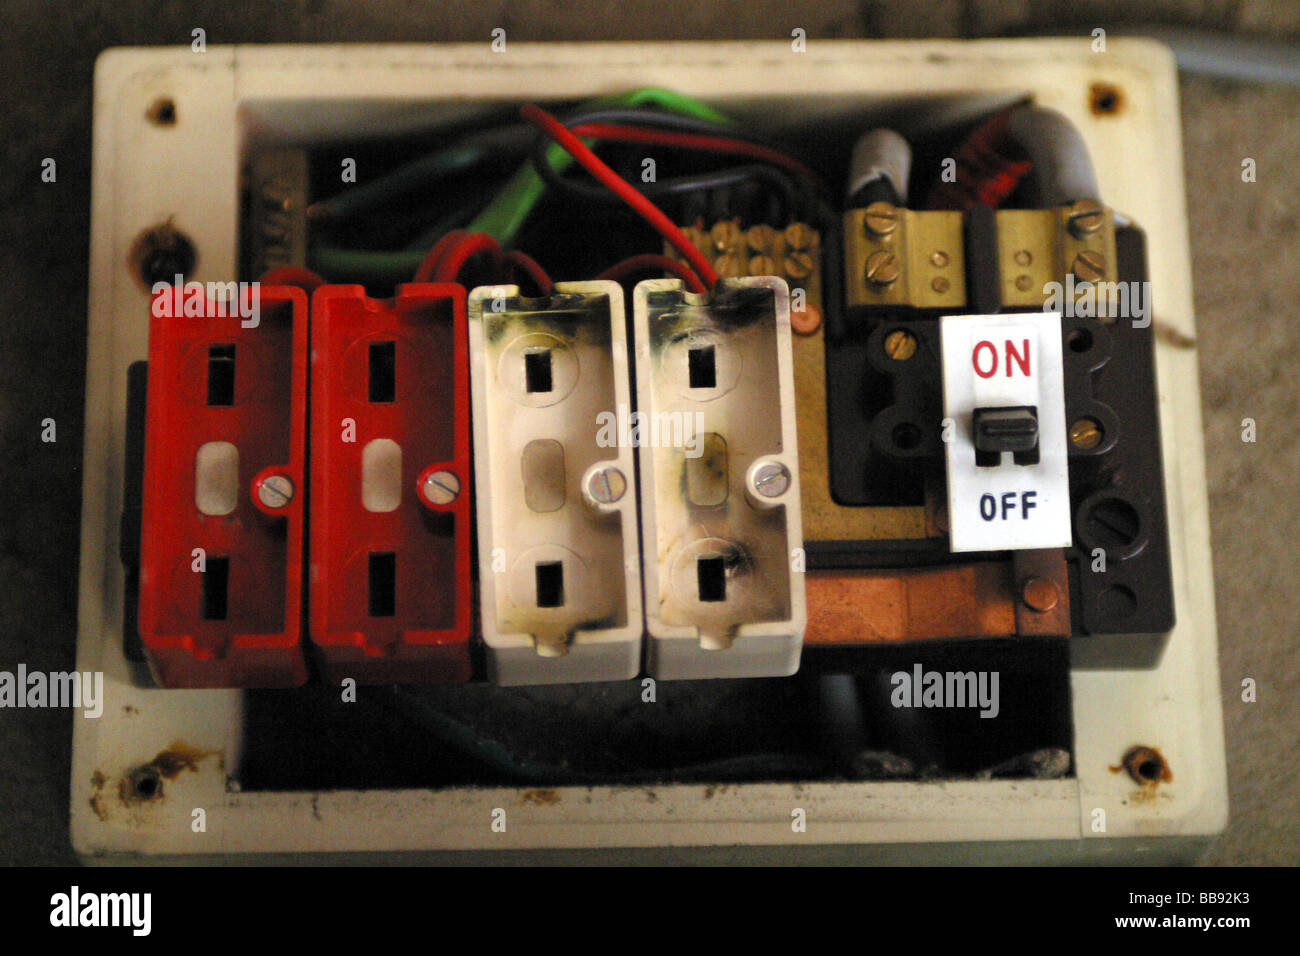 Old 50 Amp Fuse Box Content Resource Of Wiring Diagram Case Circuits Symbols Diagrams U2022 Rh Merryprintersuk Co Uk Automotive Fuses Littelfuse J